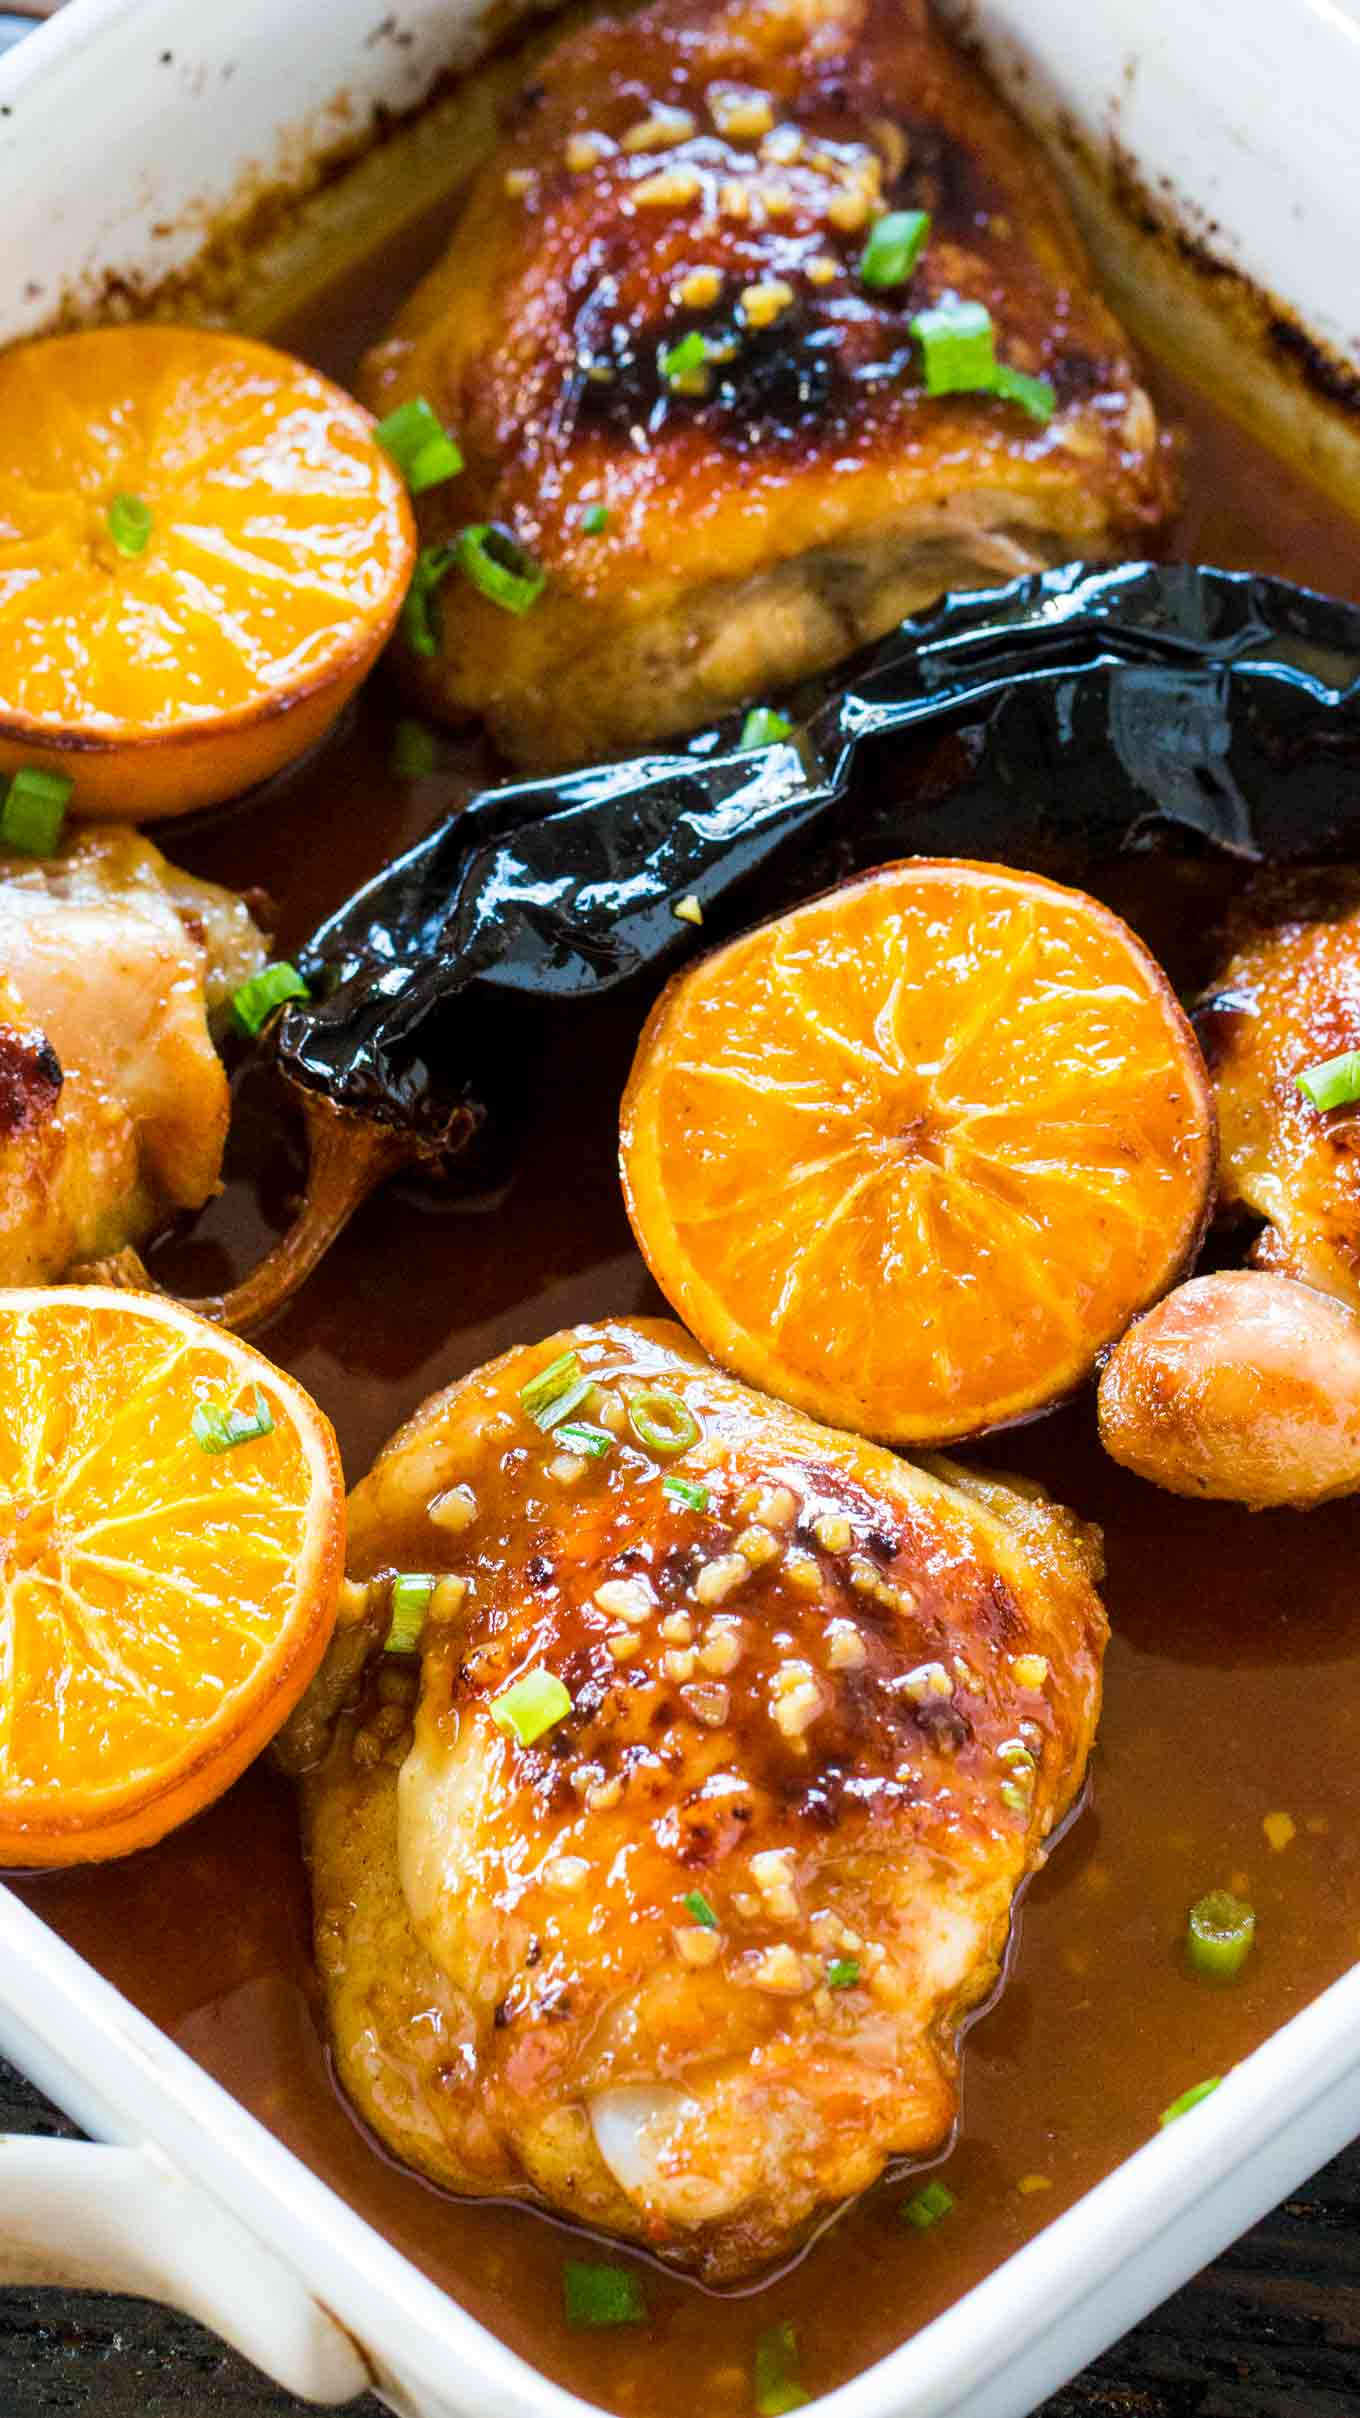 Chipotle Orange Chicken is sweet, spicy, crispy on the outside and tender on the inside. Easily made in one pan in just 30 minutes.